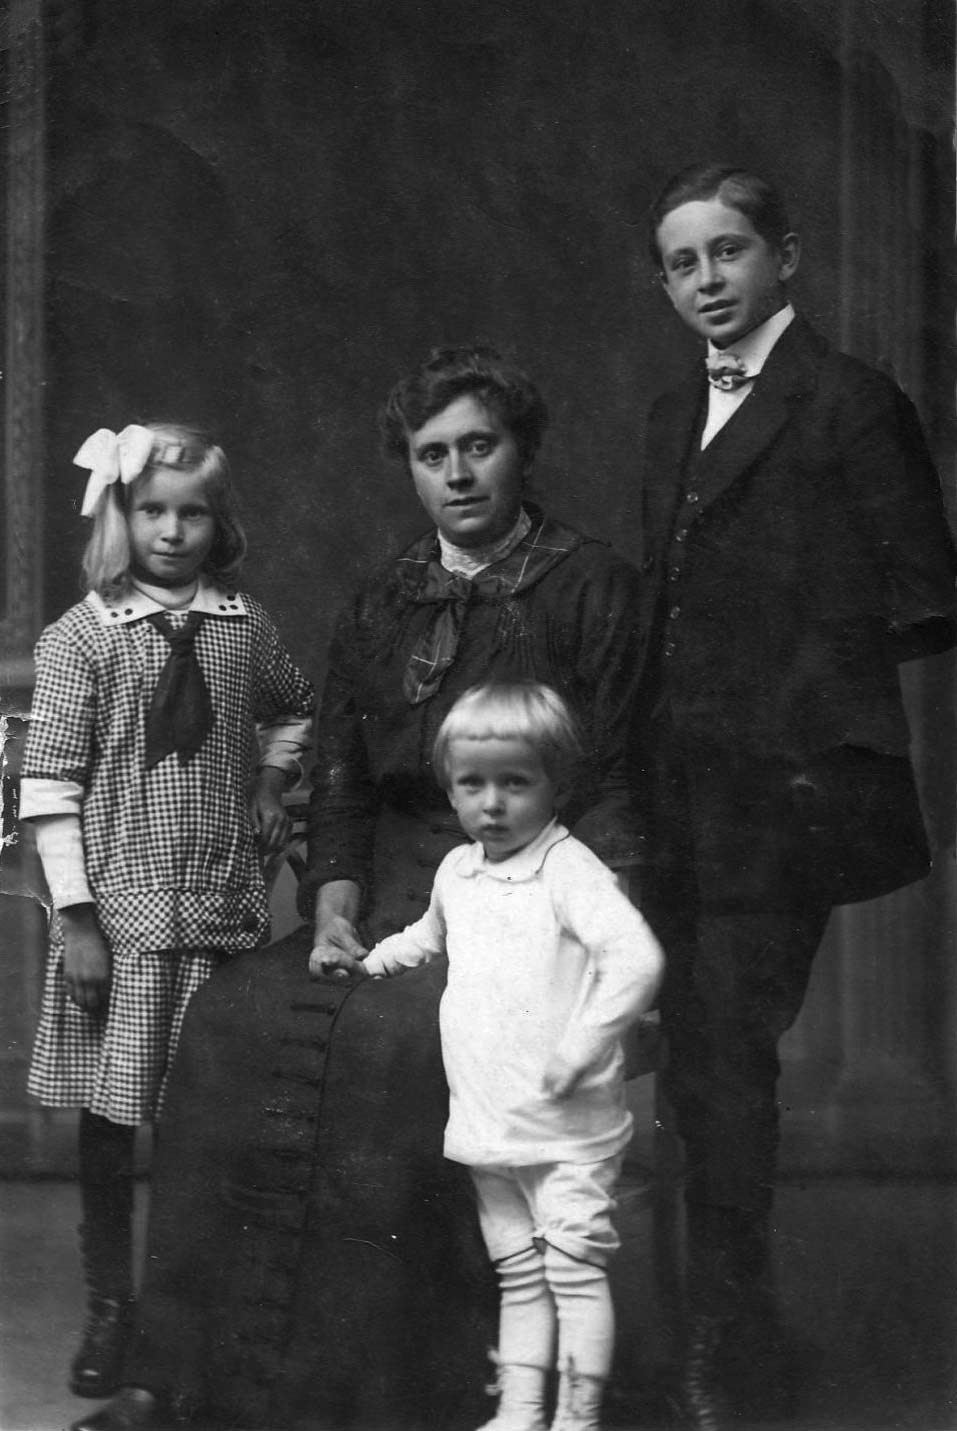 famille blanchebarbe 1916